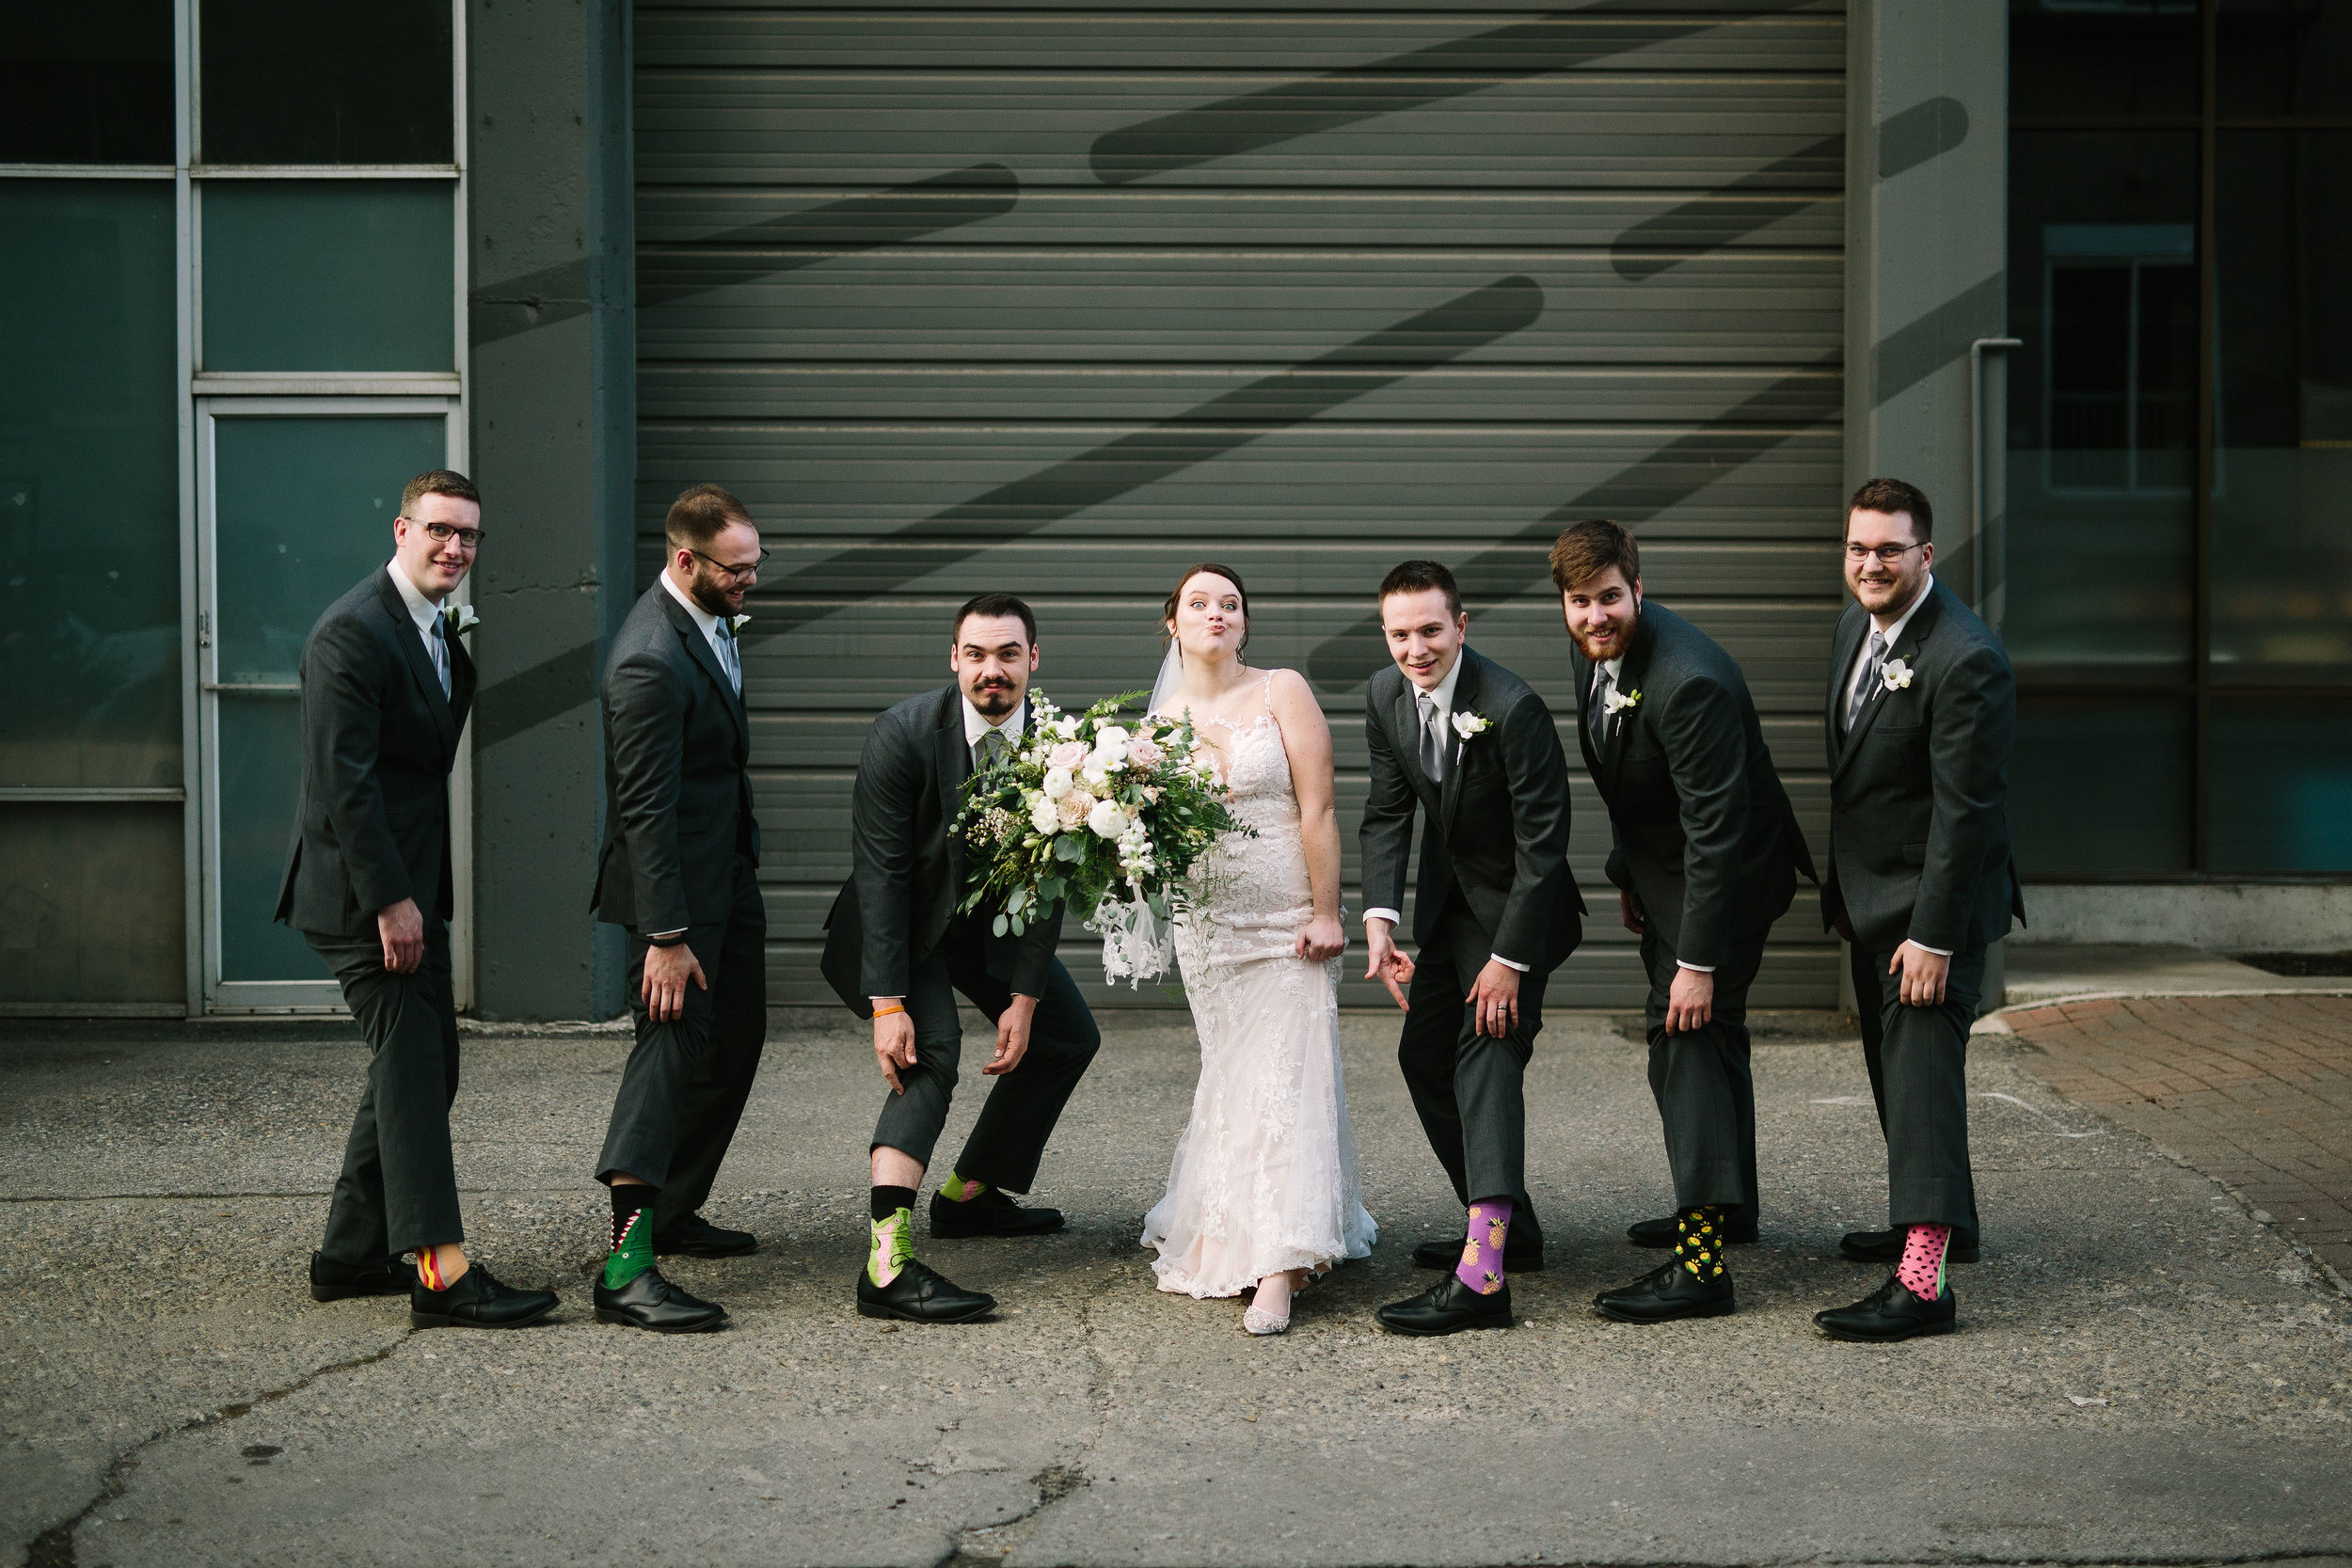 Fun Rustic spokane wedding bride and groomsmen showing off shoes and socks together